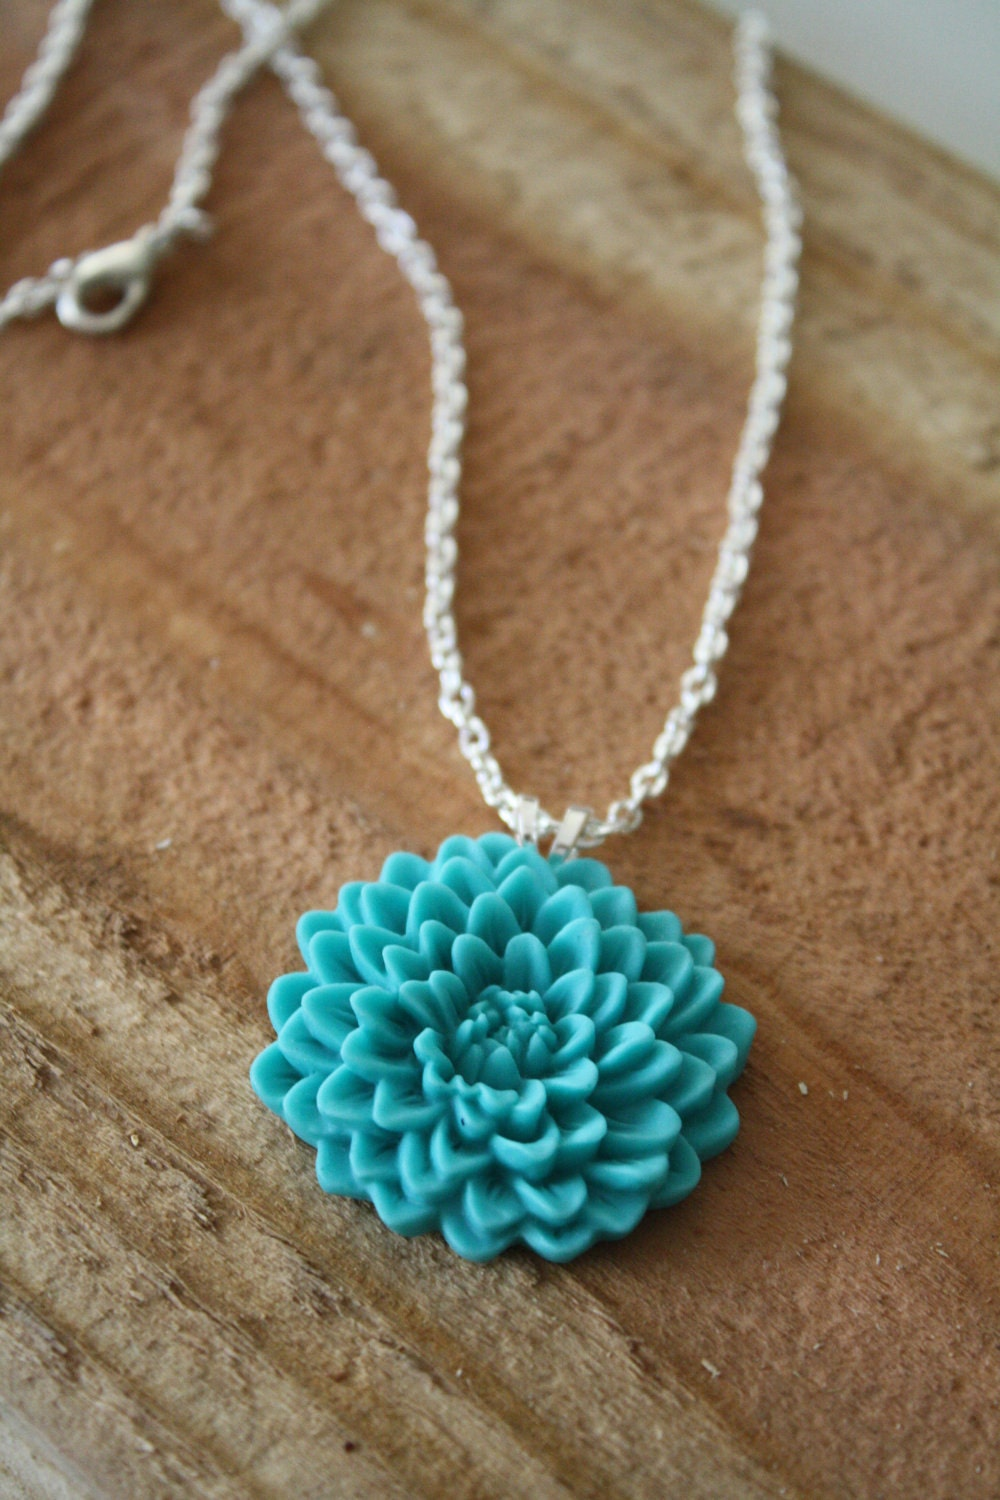 AQUA - Chrysanthemum Cabochon Pendant Necklace on a Silver Chain